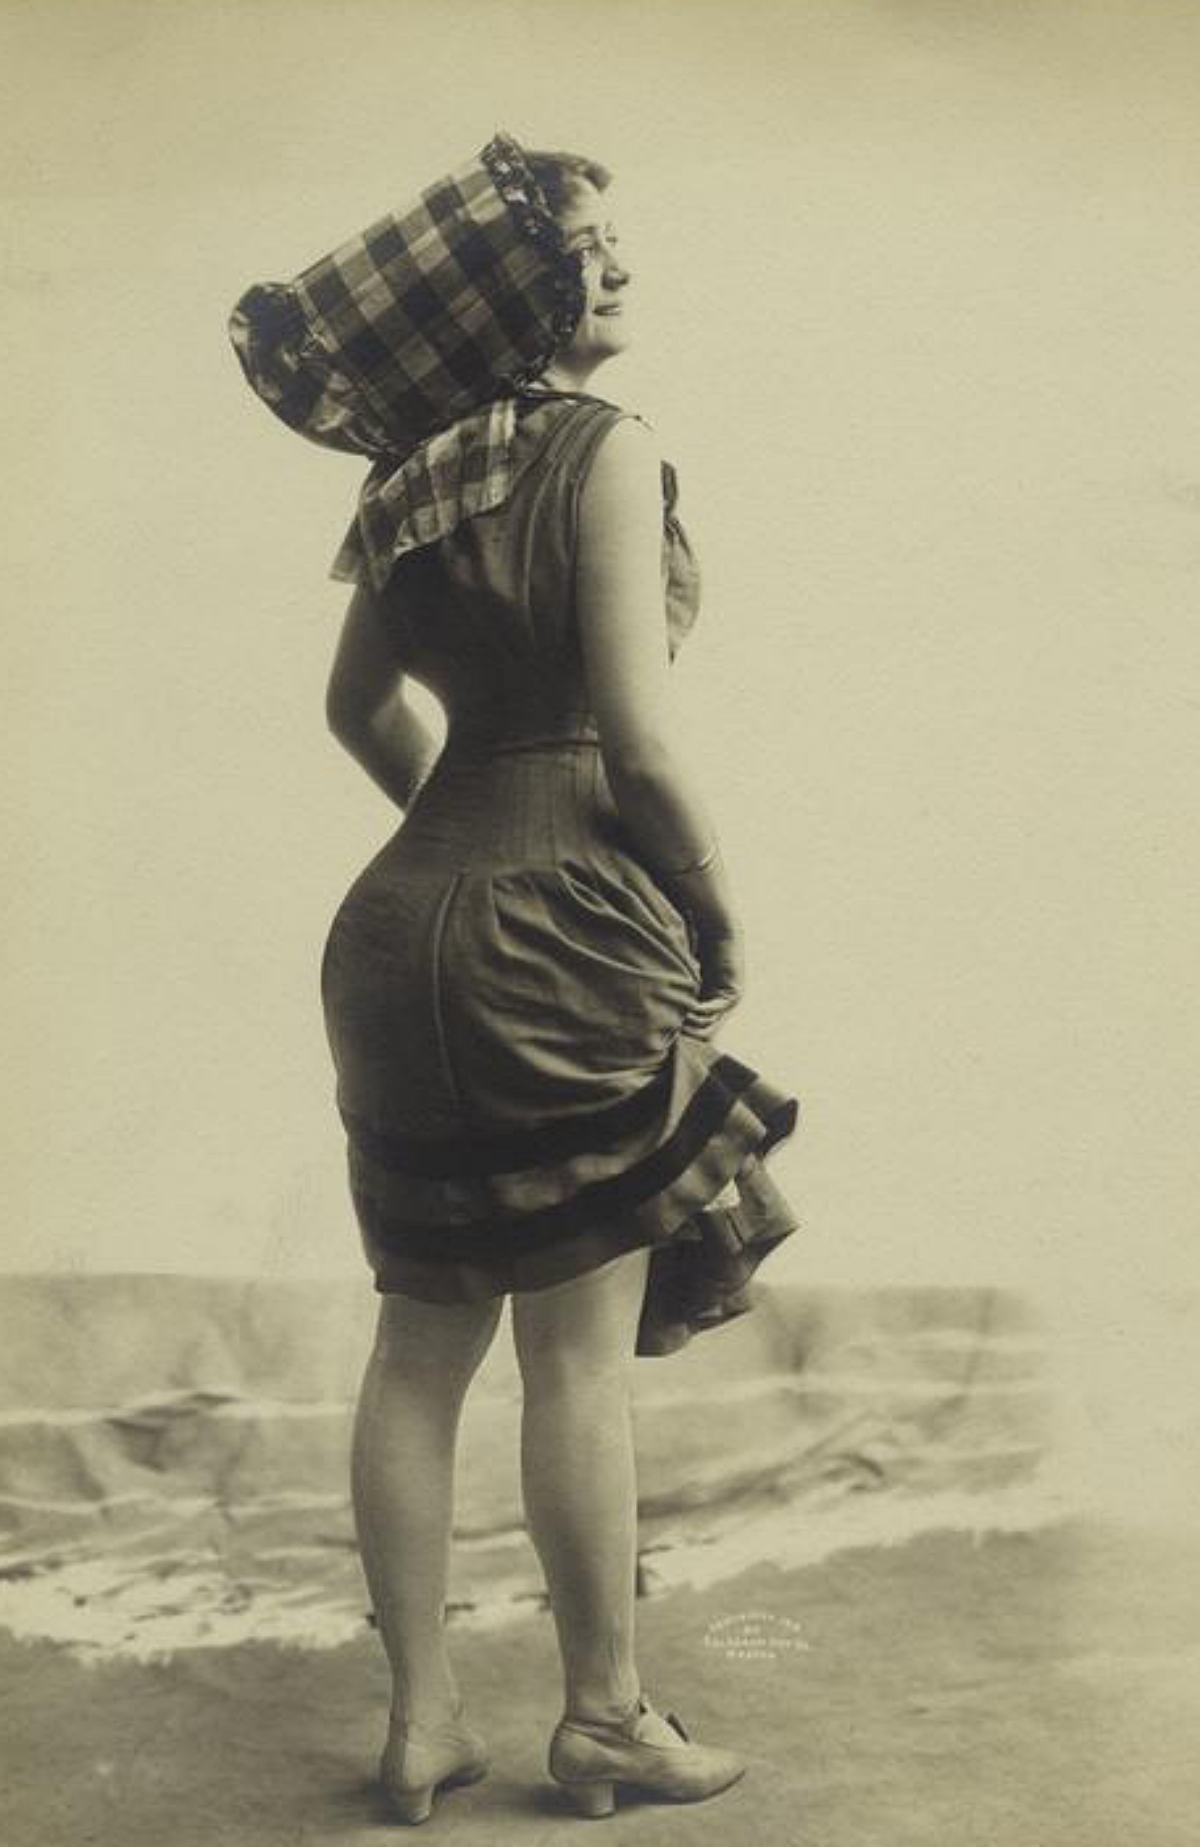 summer outfit by the shore 1910